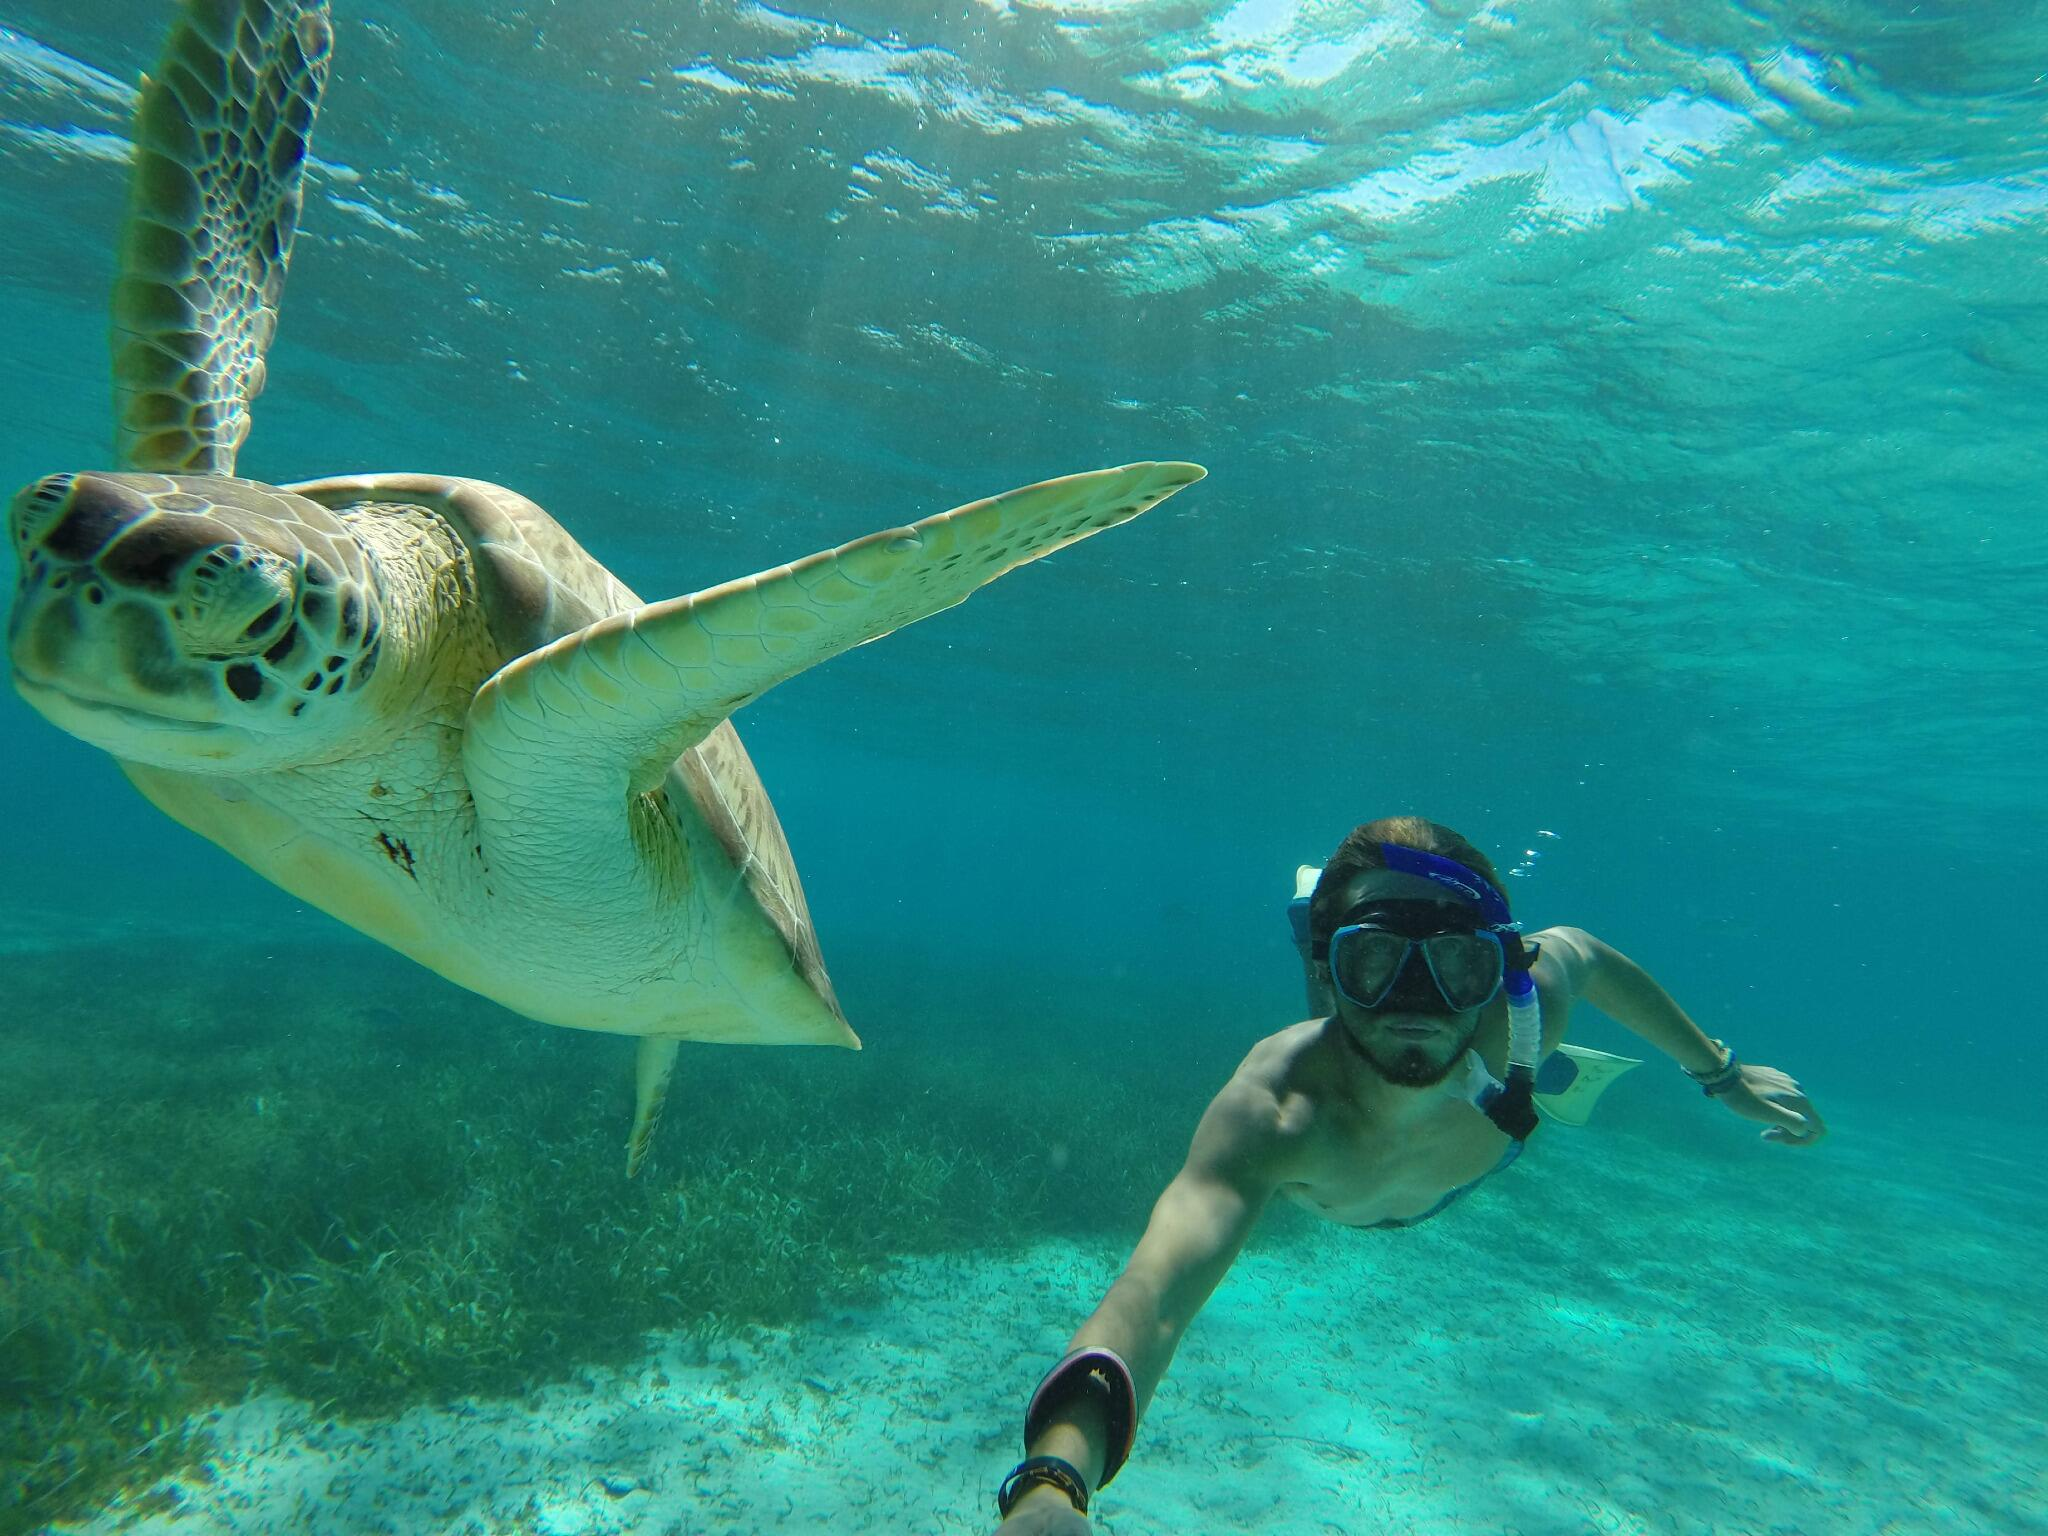 GoPro user Lane Adams snorkeling the Hol Chan Marine Reserve in Belize. http://t.co/0Bh184gDRL